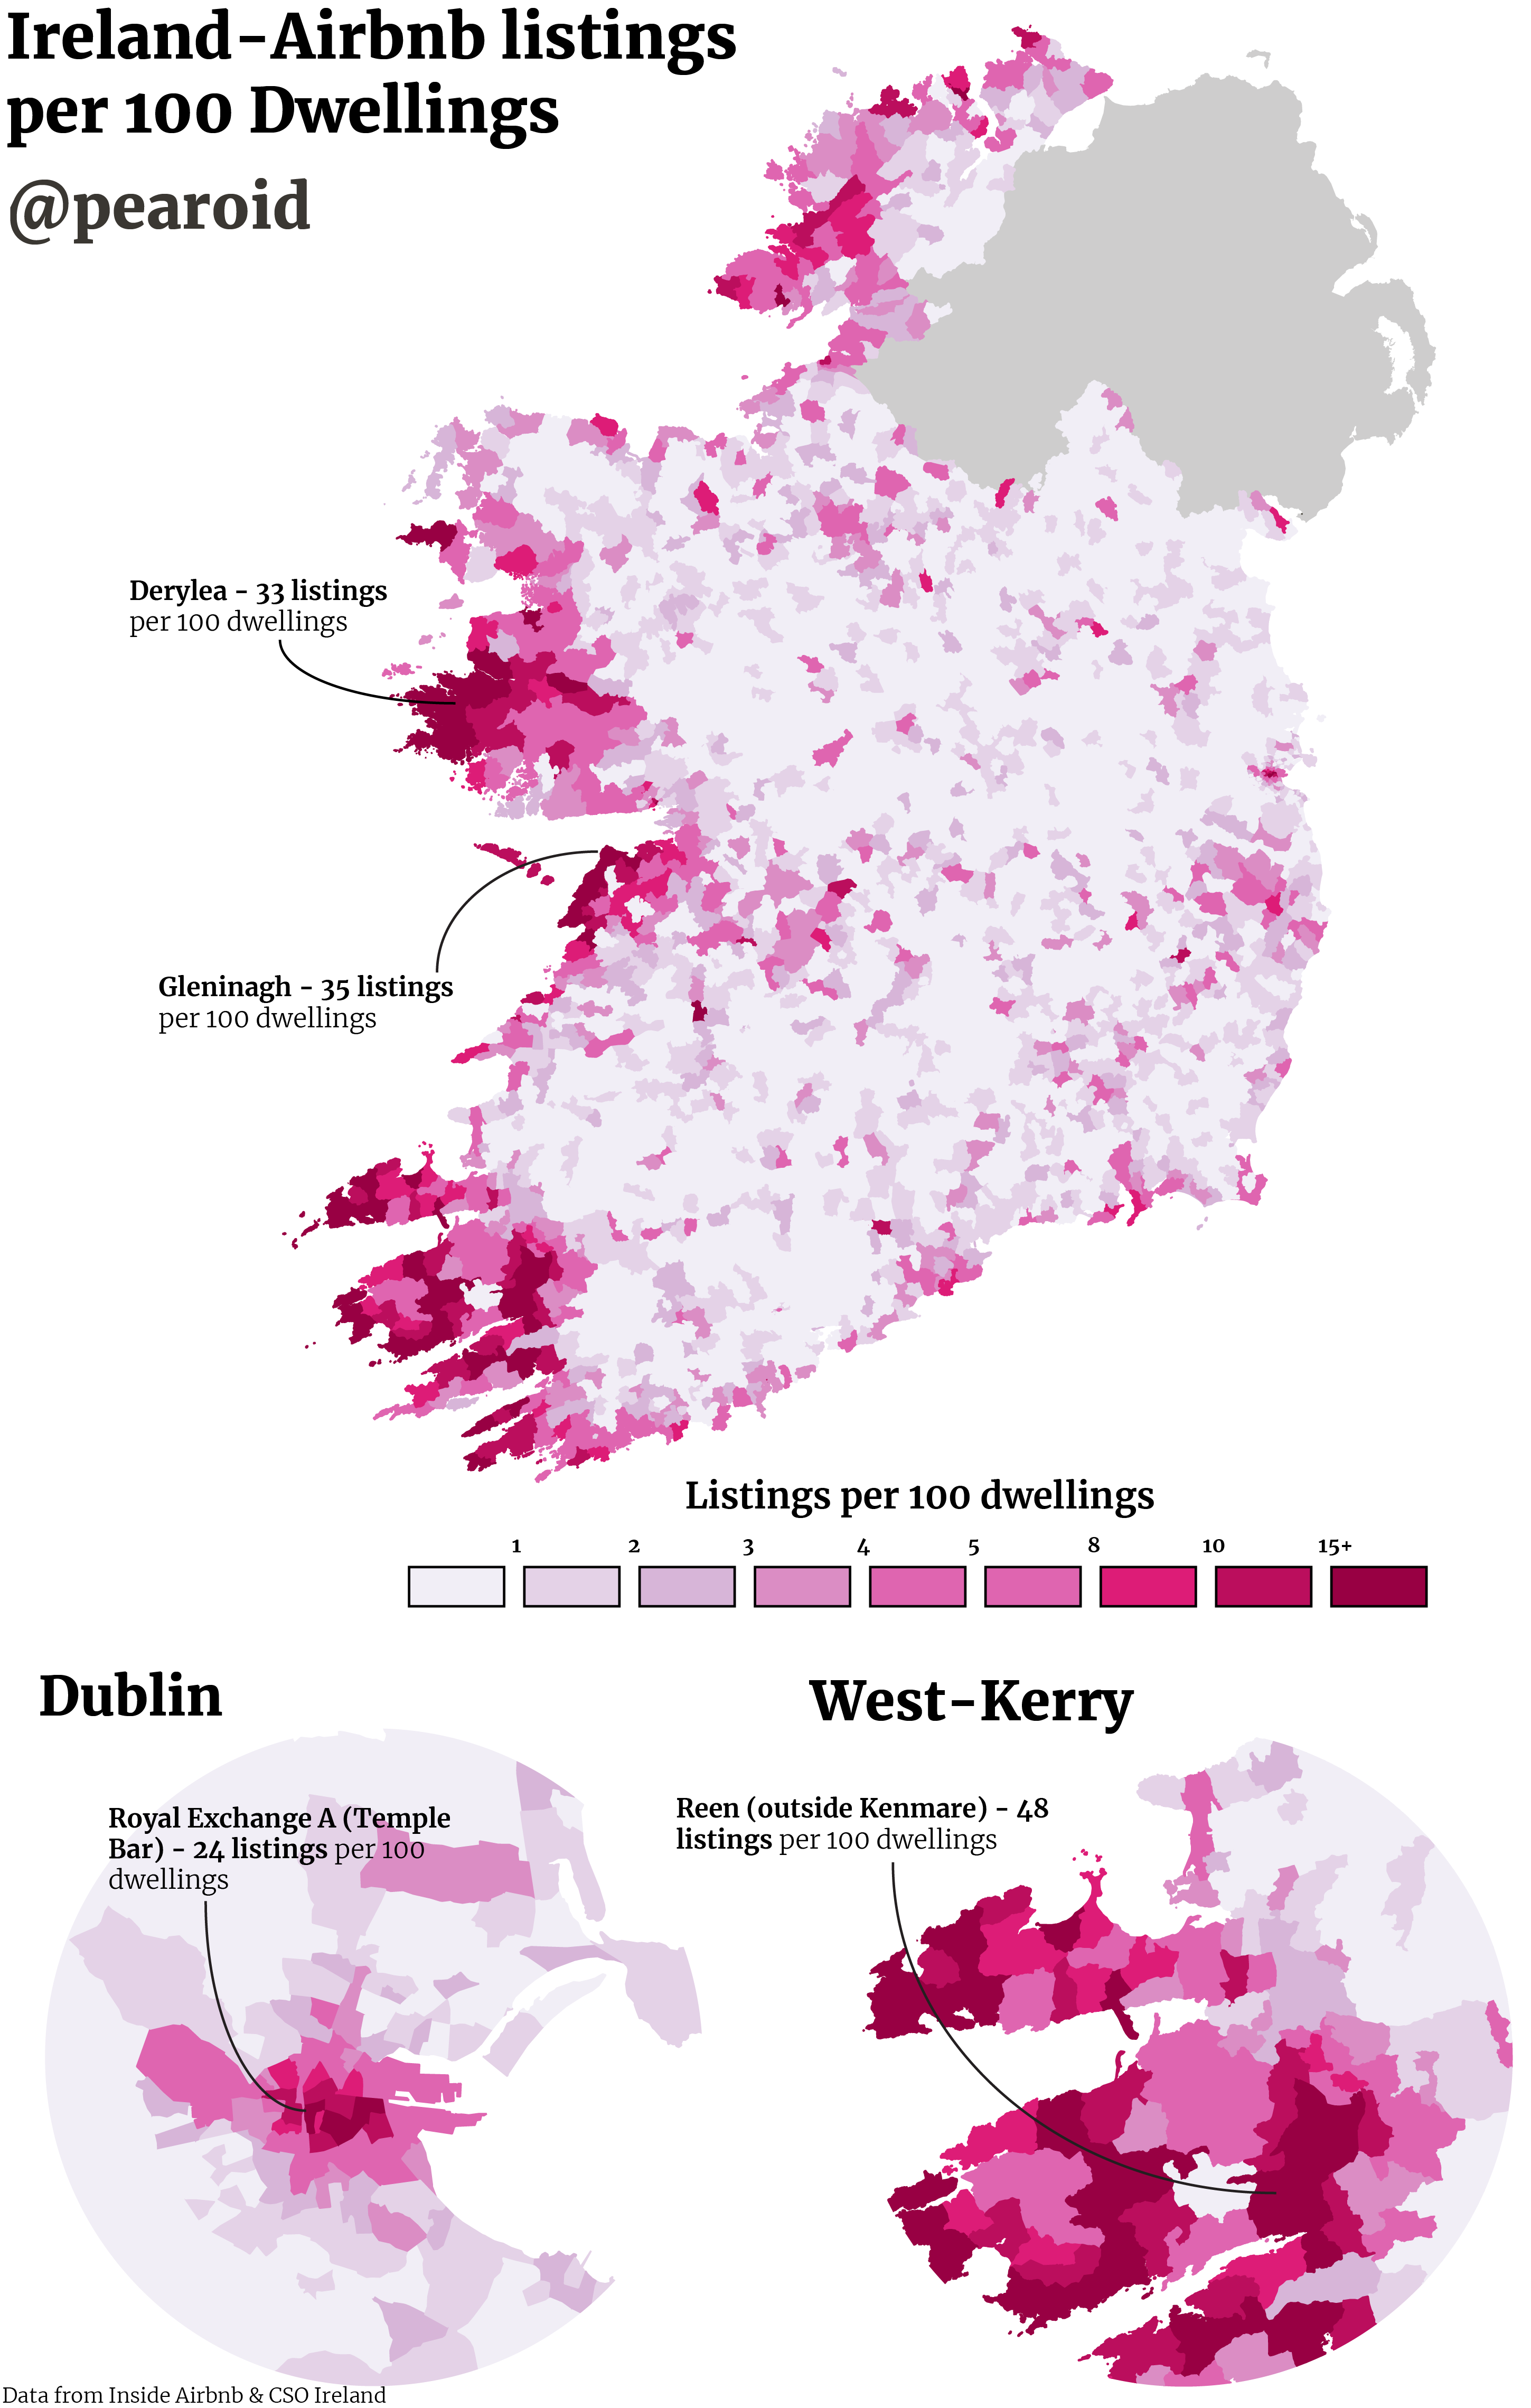 Airbnbs per 100 Dwellings in Ireland